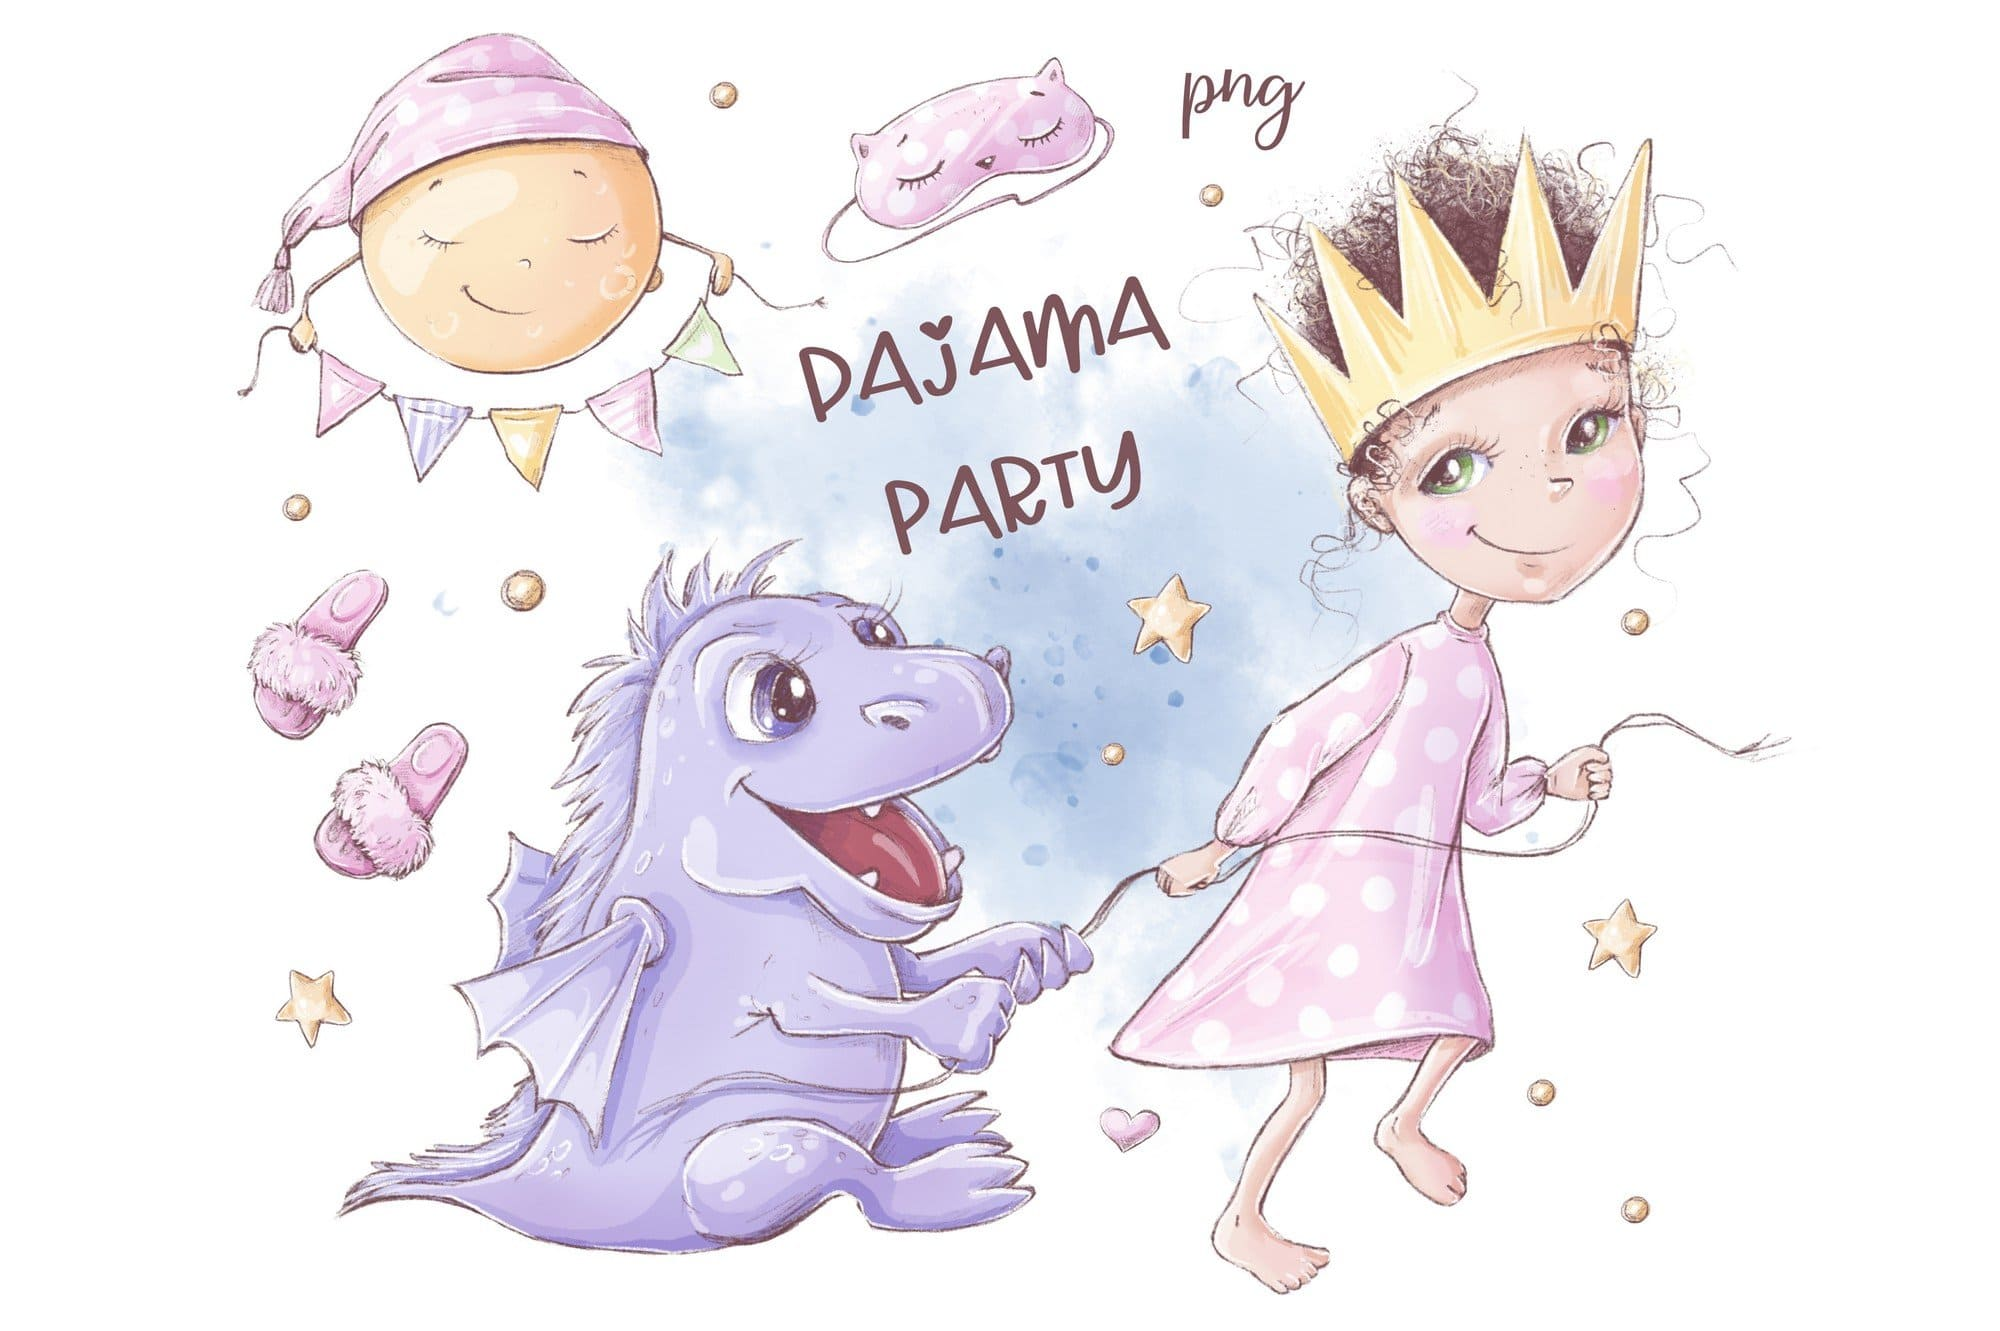 Pajama party with dragons and smiling moon.